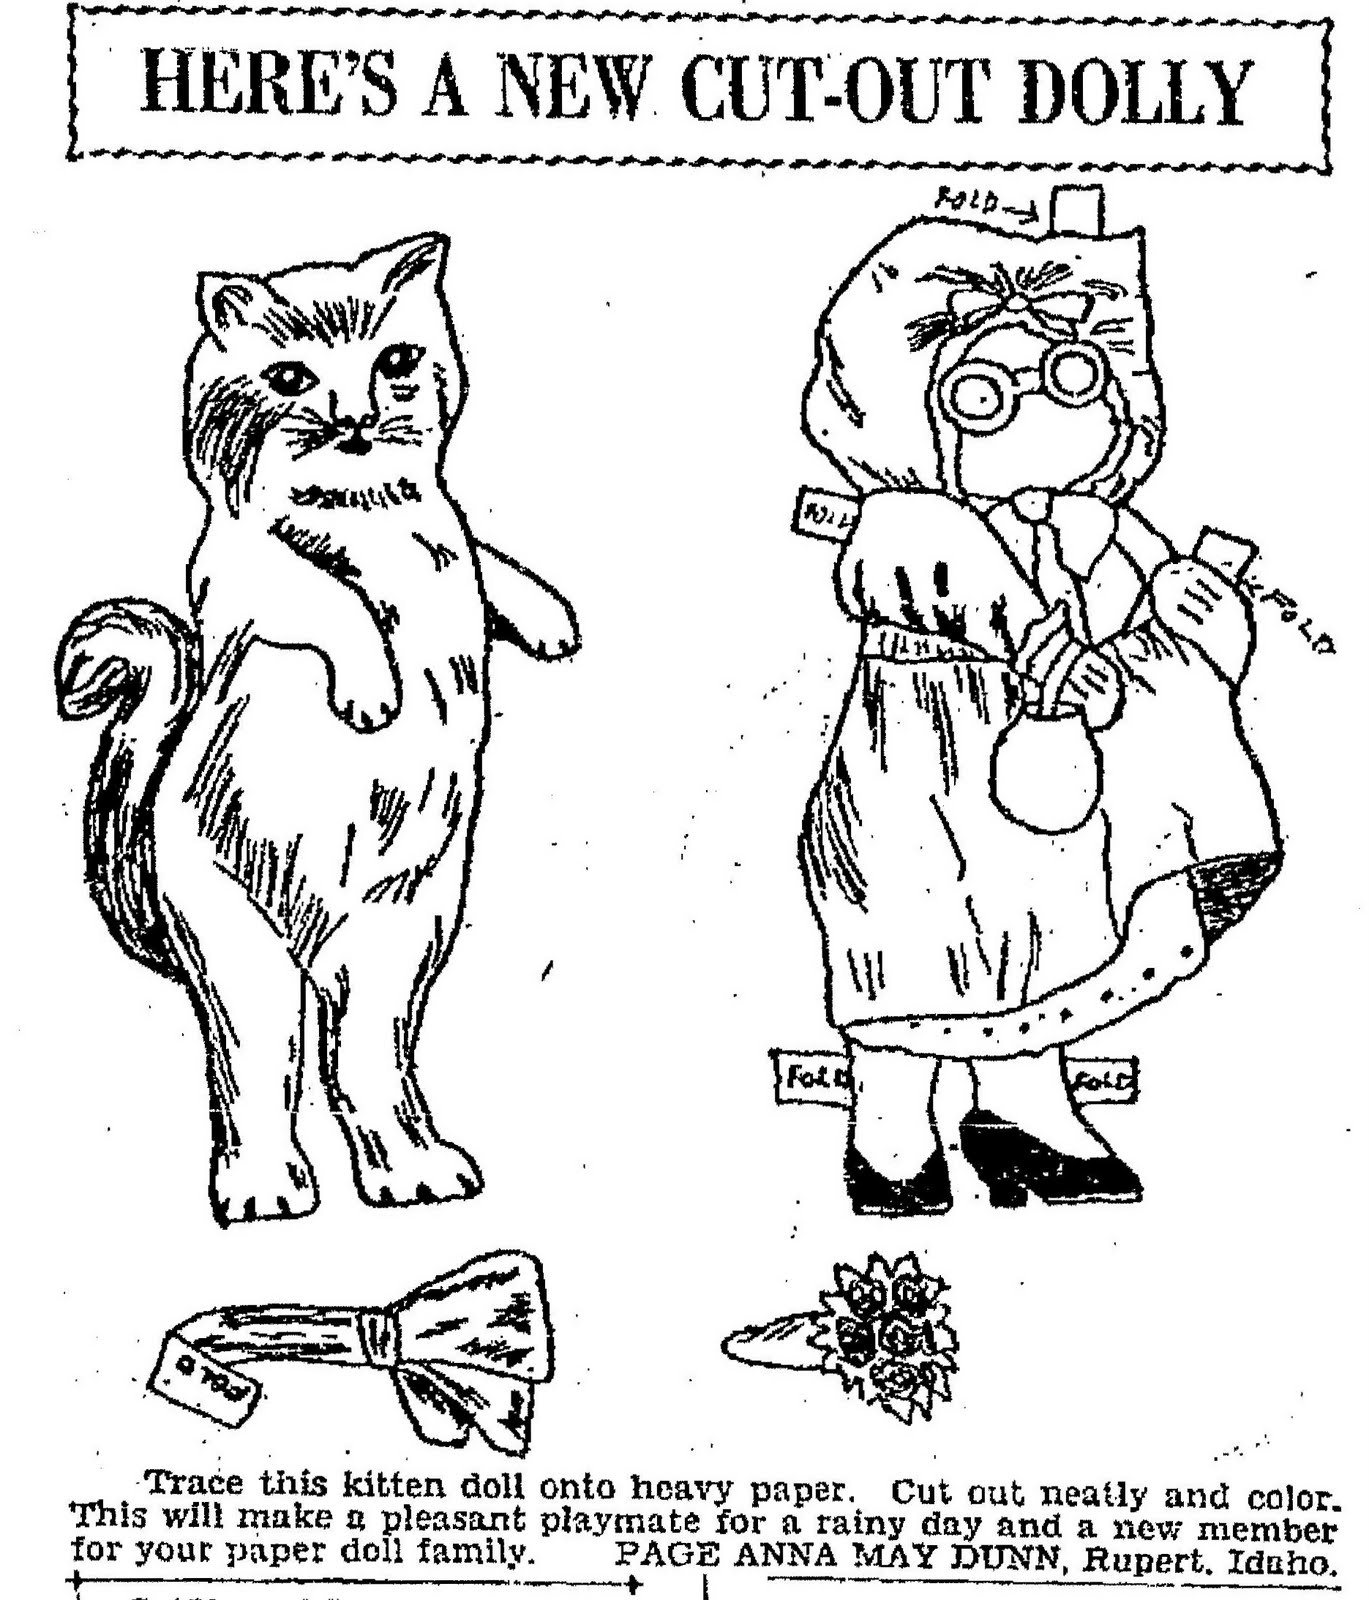 Newspaper coloring page may 24 1931 another paper doll by anna may dunn a kitten doll that will make a pleasant playmate for your paper doll family